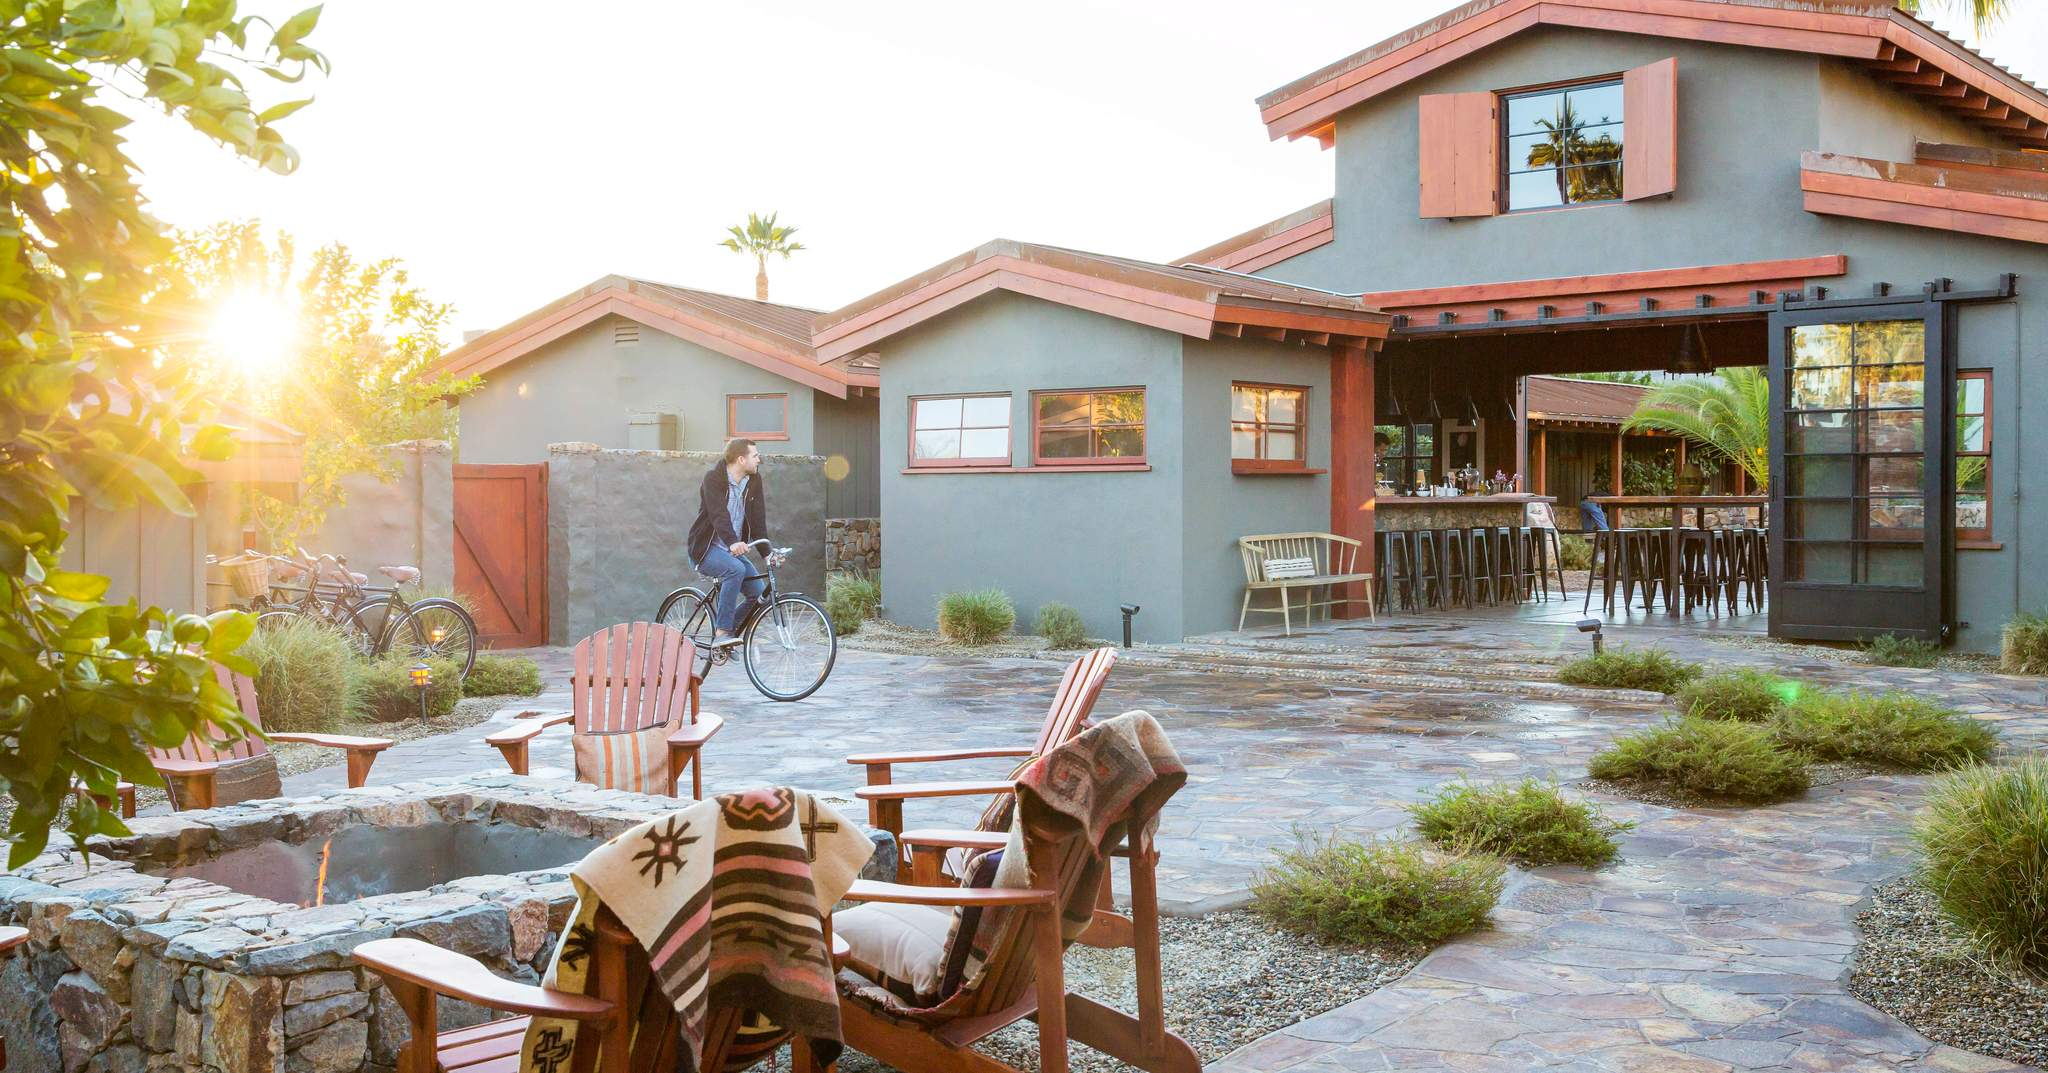 Sparrows lodge in palm springs california lodge ranch for Rosewood ranch cost